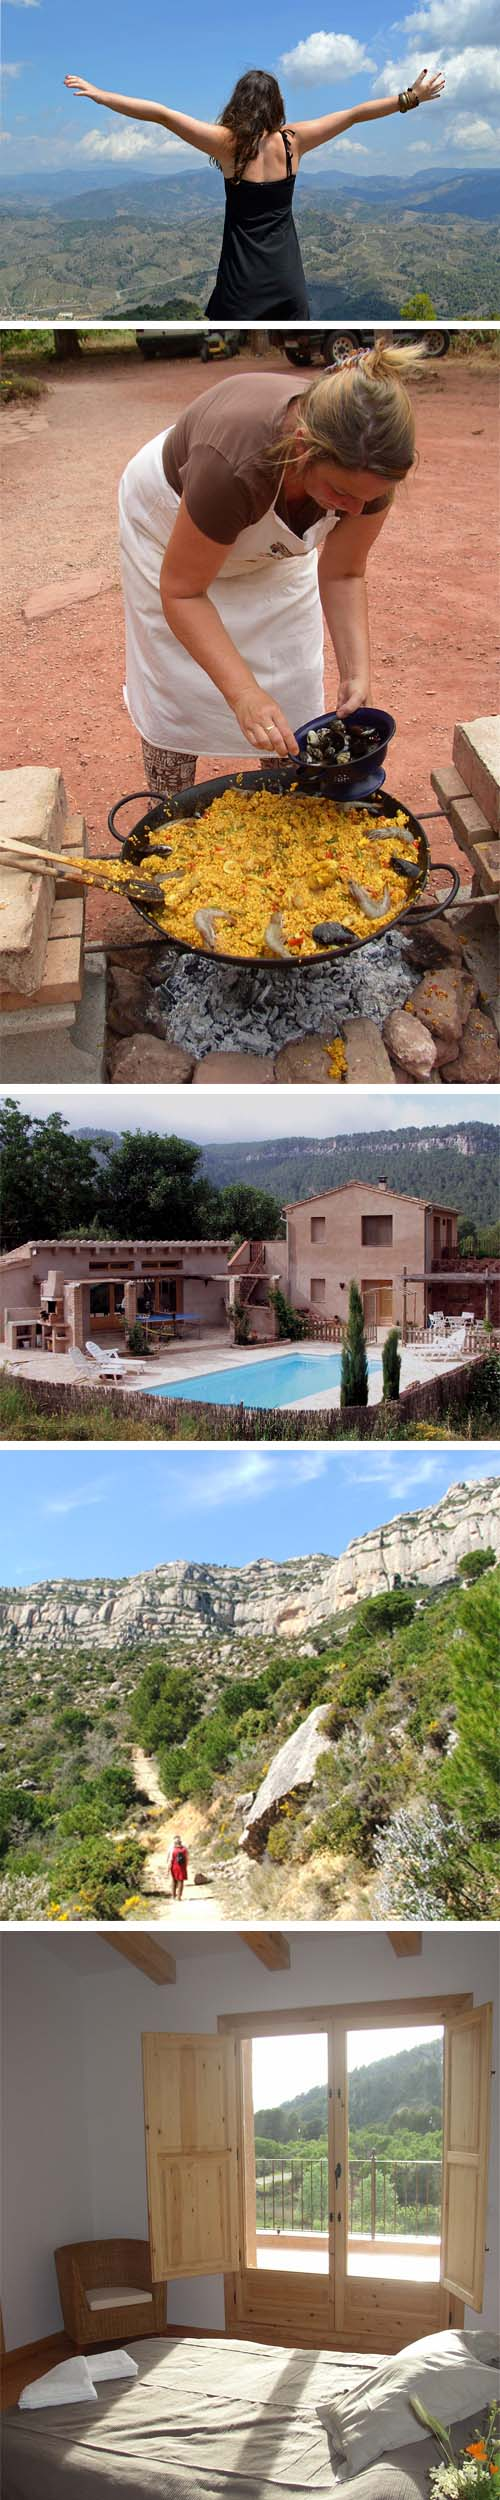 Luxury Rustic Holiday Cottage In The Priorat Extra Virgin Olive Oil Holiday Cottage Rustic Holiday Holiday